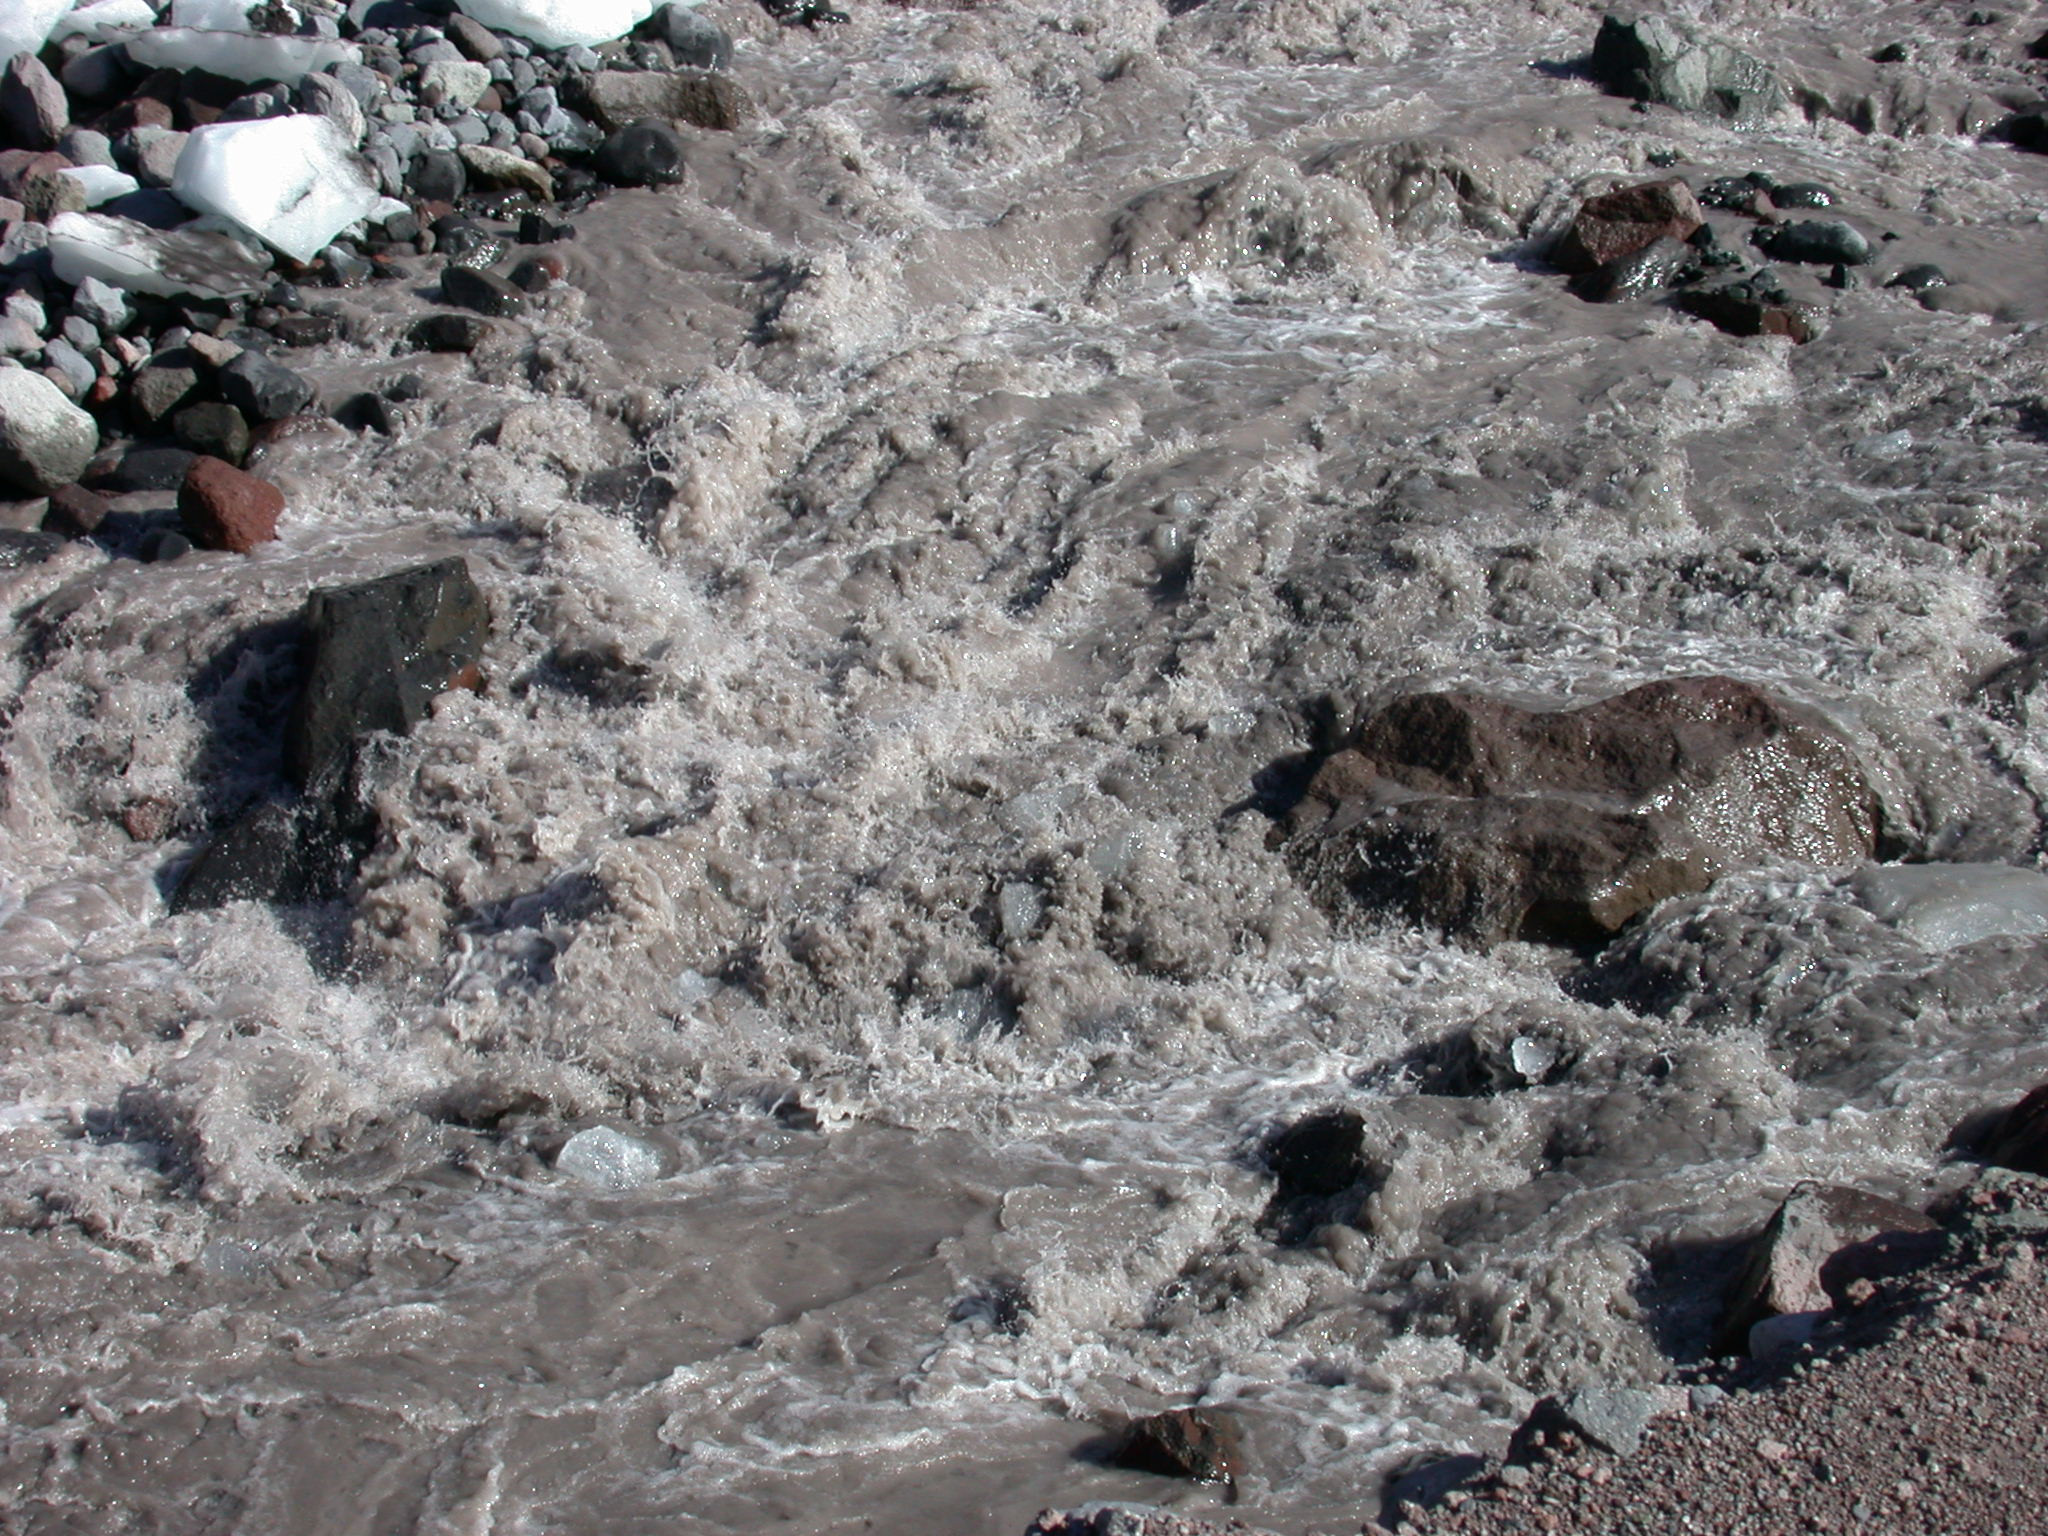 Ice Boulders Flowing in Glacial River Under Collapsed Ice Cave at Base of Glacier on Mount Rainier